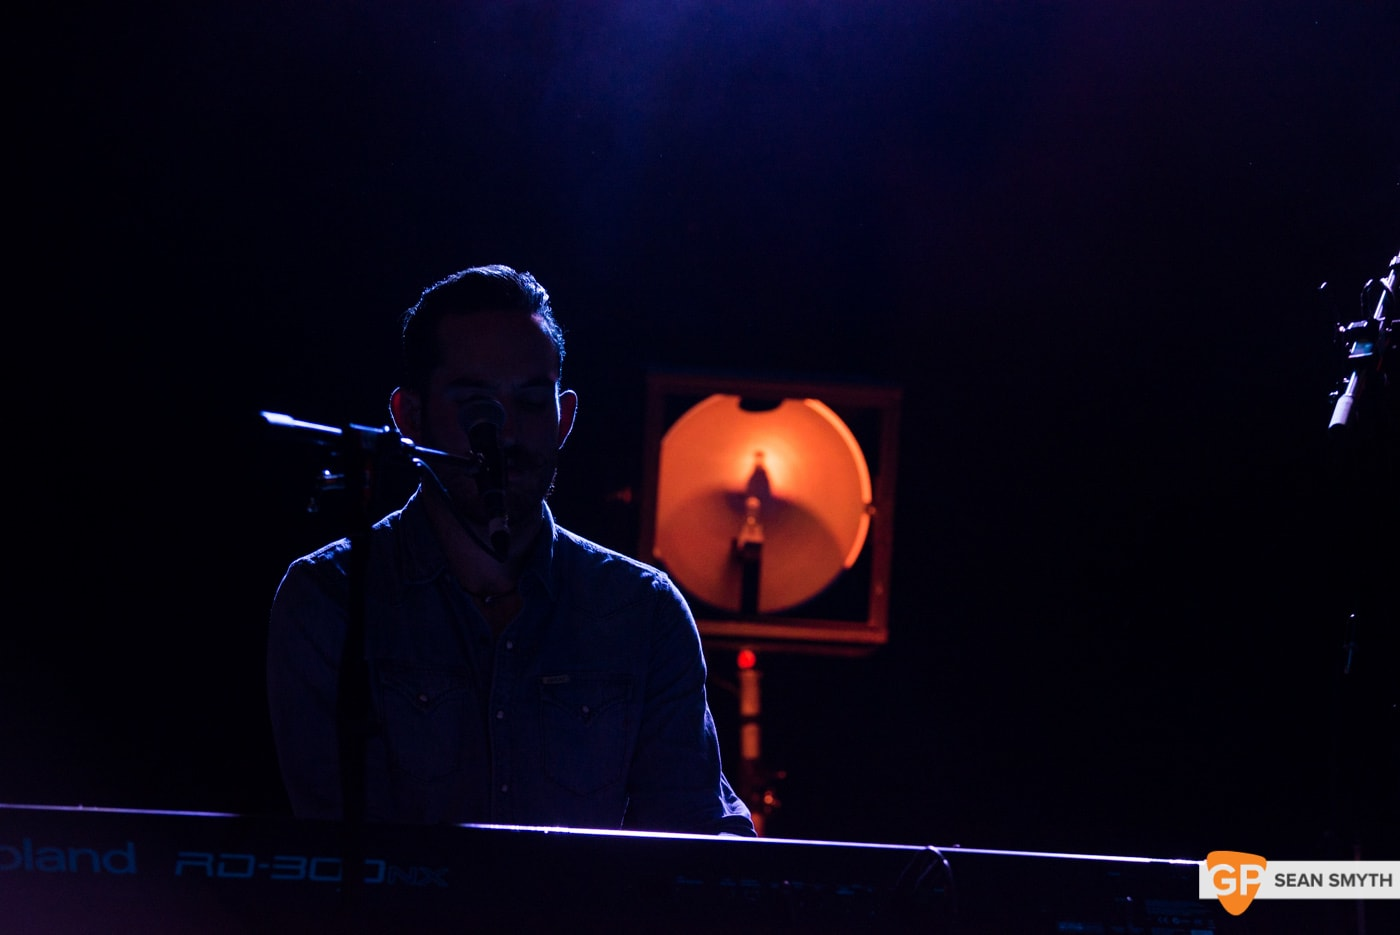 hudson-taylor-at-the-olympia-theatre-26-2-15-by-sean-smyth-20-of-26_16756758055_o